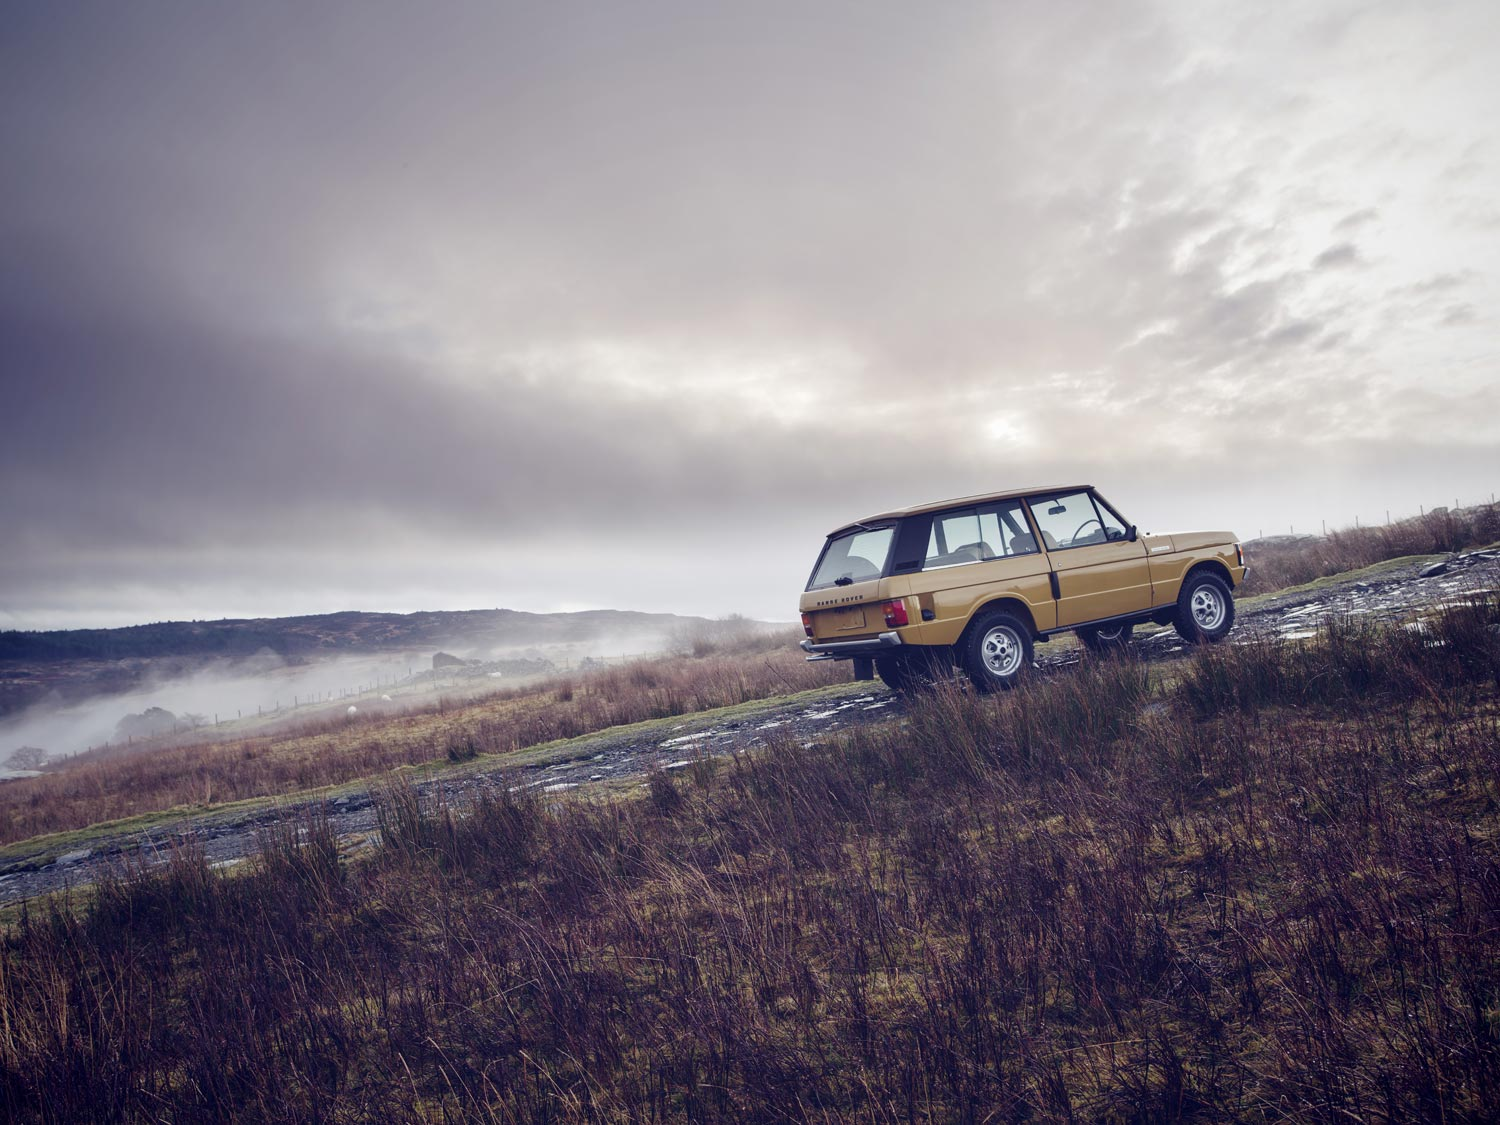 Land Rover Classic's expert team has drawn on decades of engineering and design expertise to complete the first Range Rover Reborn – a carefully selected 1978 Classic Range Rover.